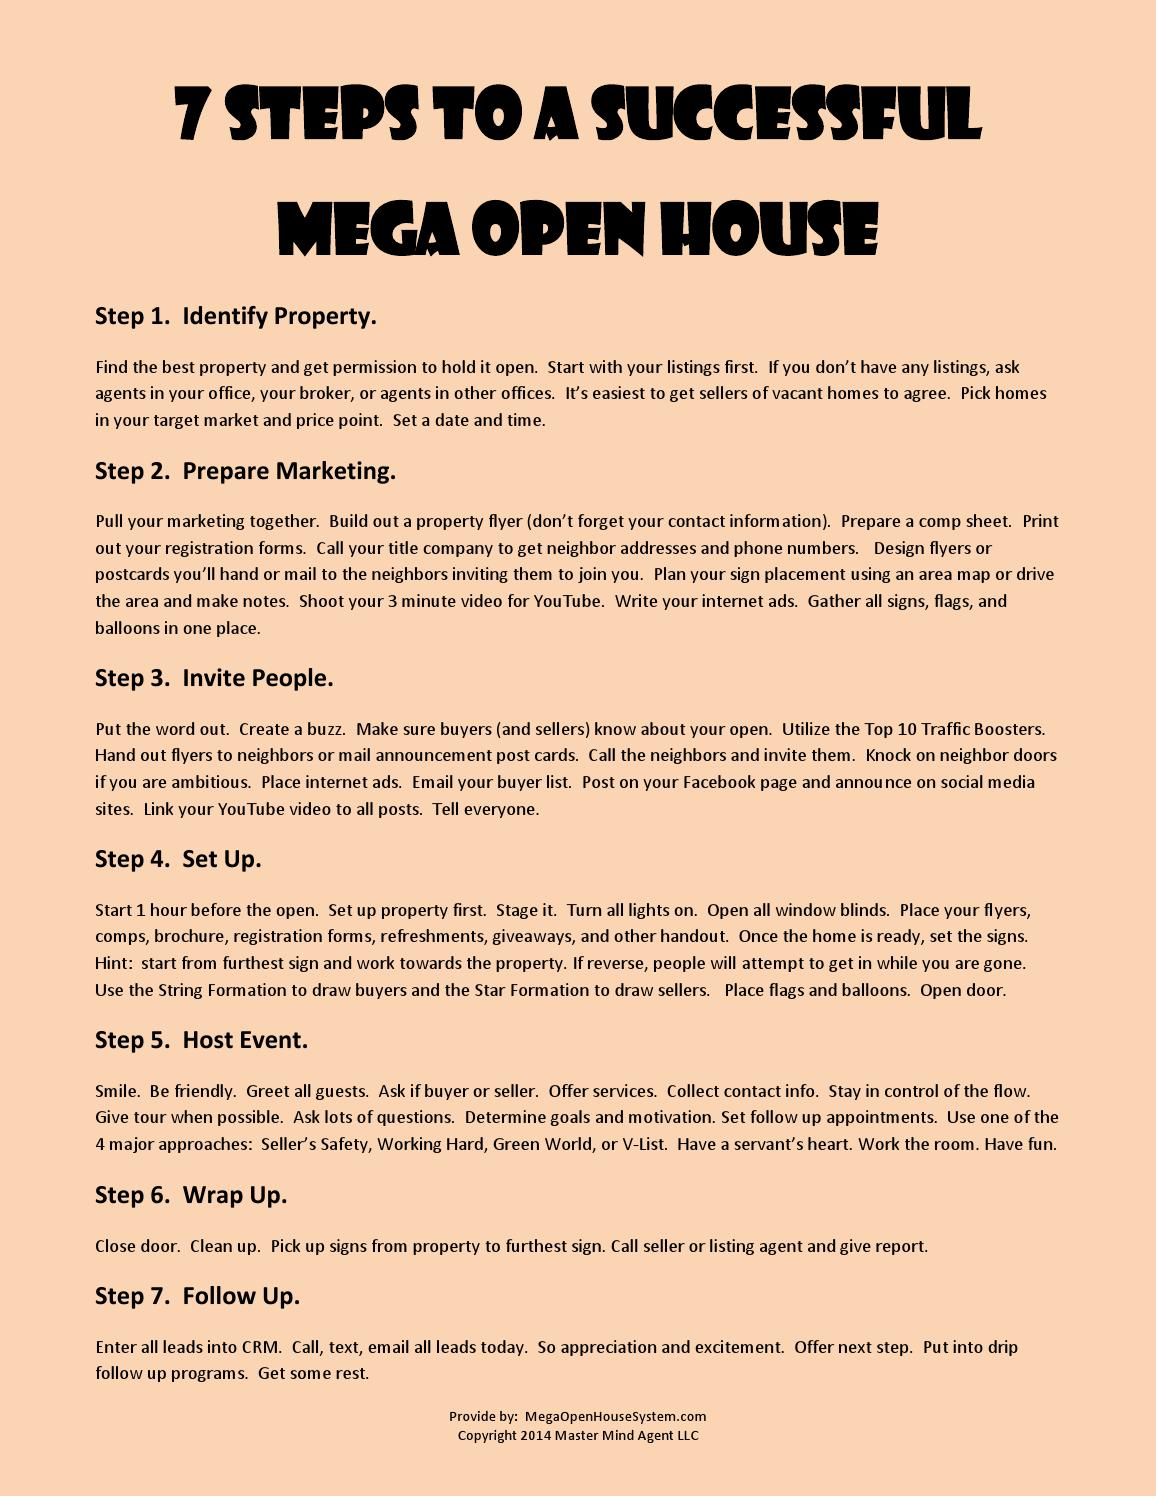 Mega open house system 7 steps by Phil Lande - issuu